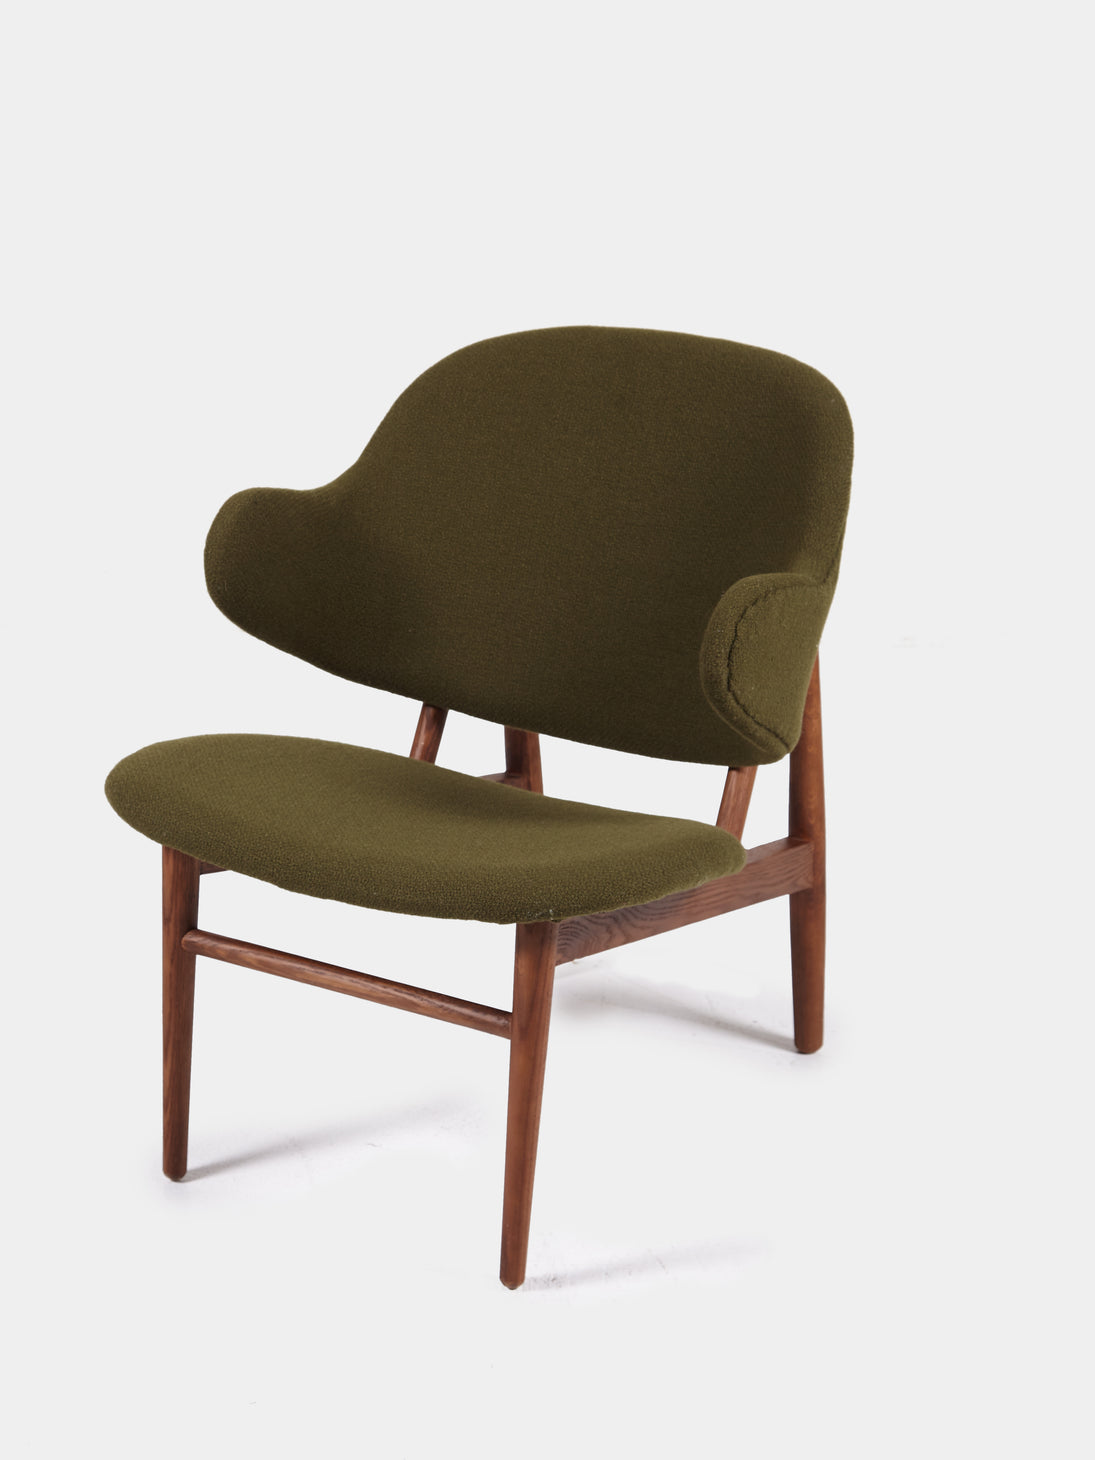 Armchair by ib Kofod-Larsen for Christensen & Larsen